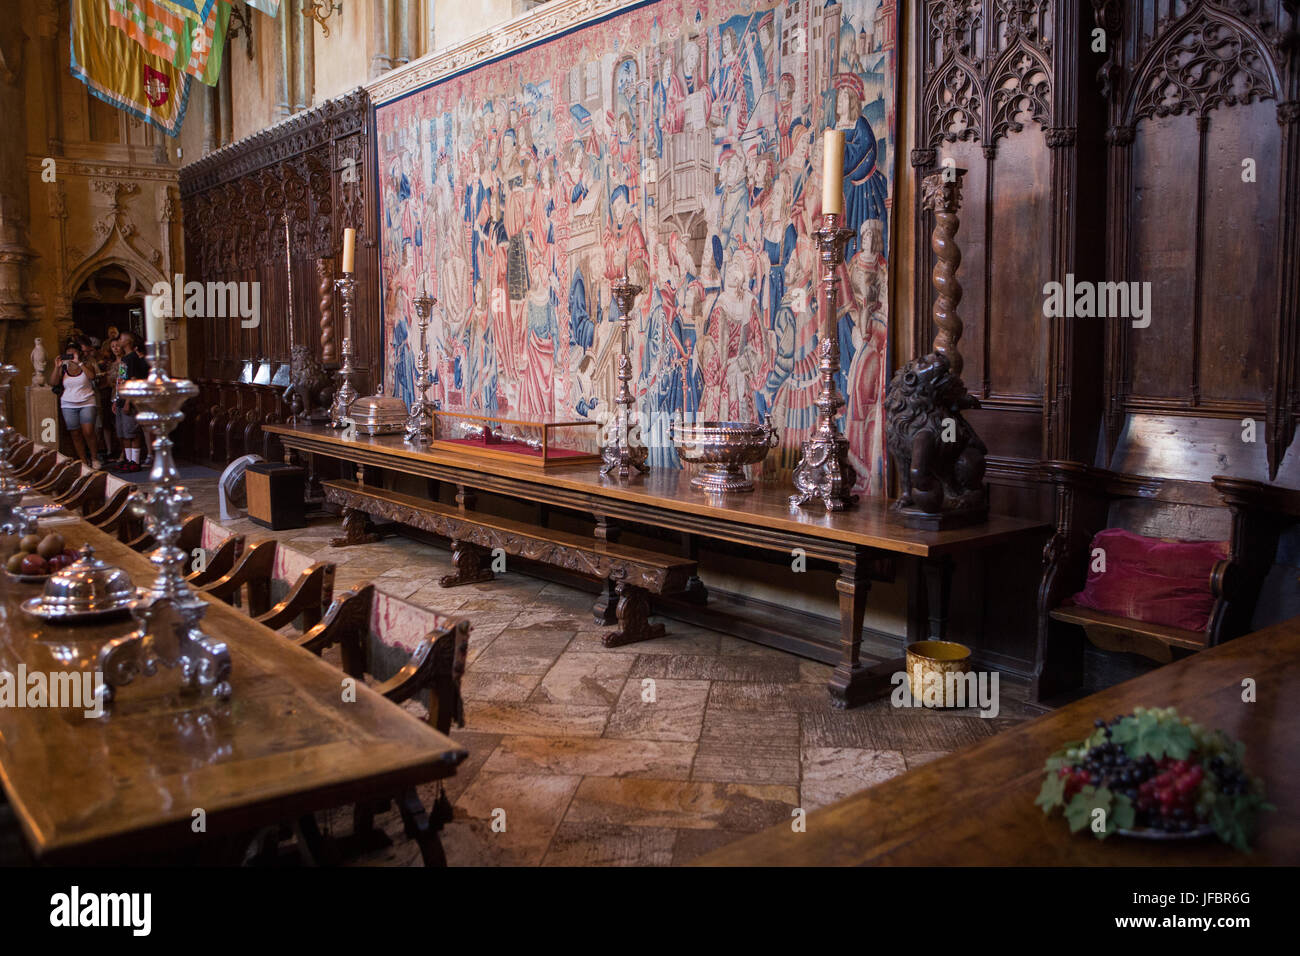 Tourists enter the dining room at Hearst Castle, which has extensive furniture, tables, tapestries, sculptures and - Stock Image